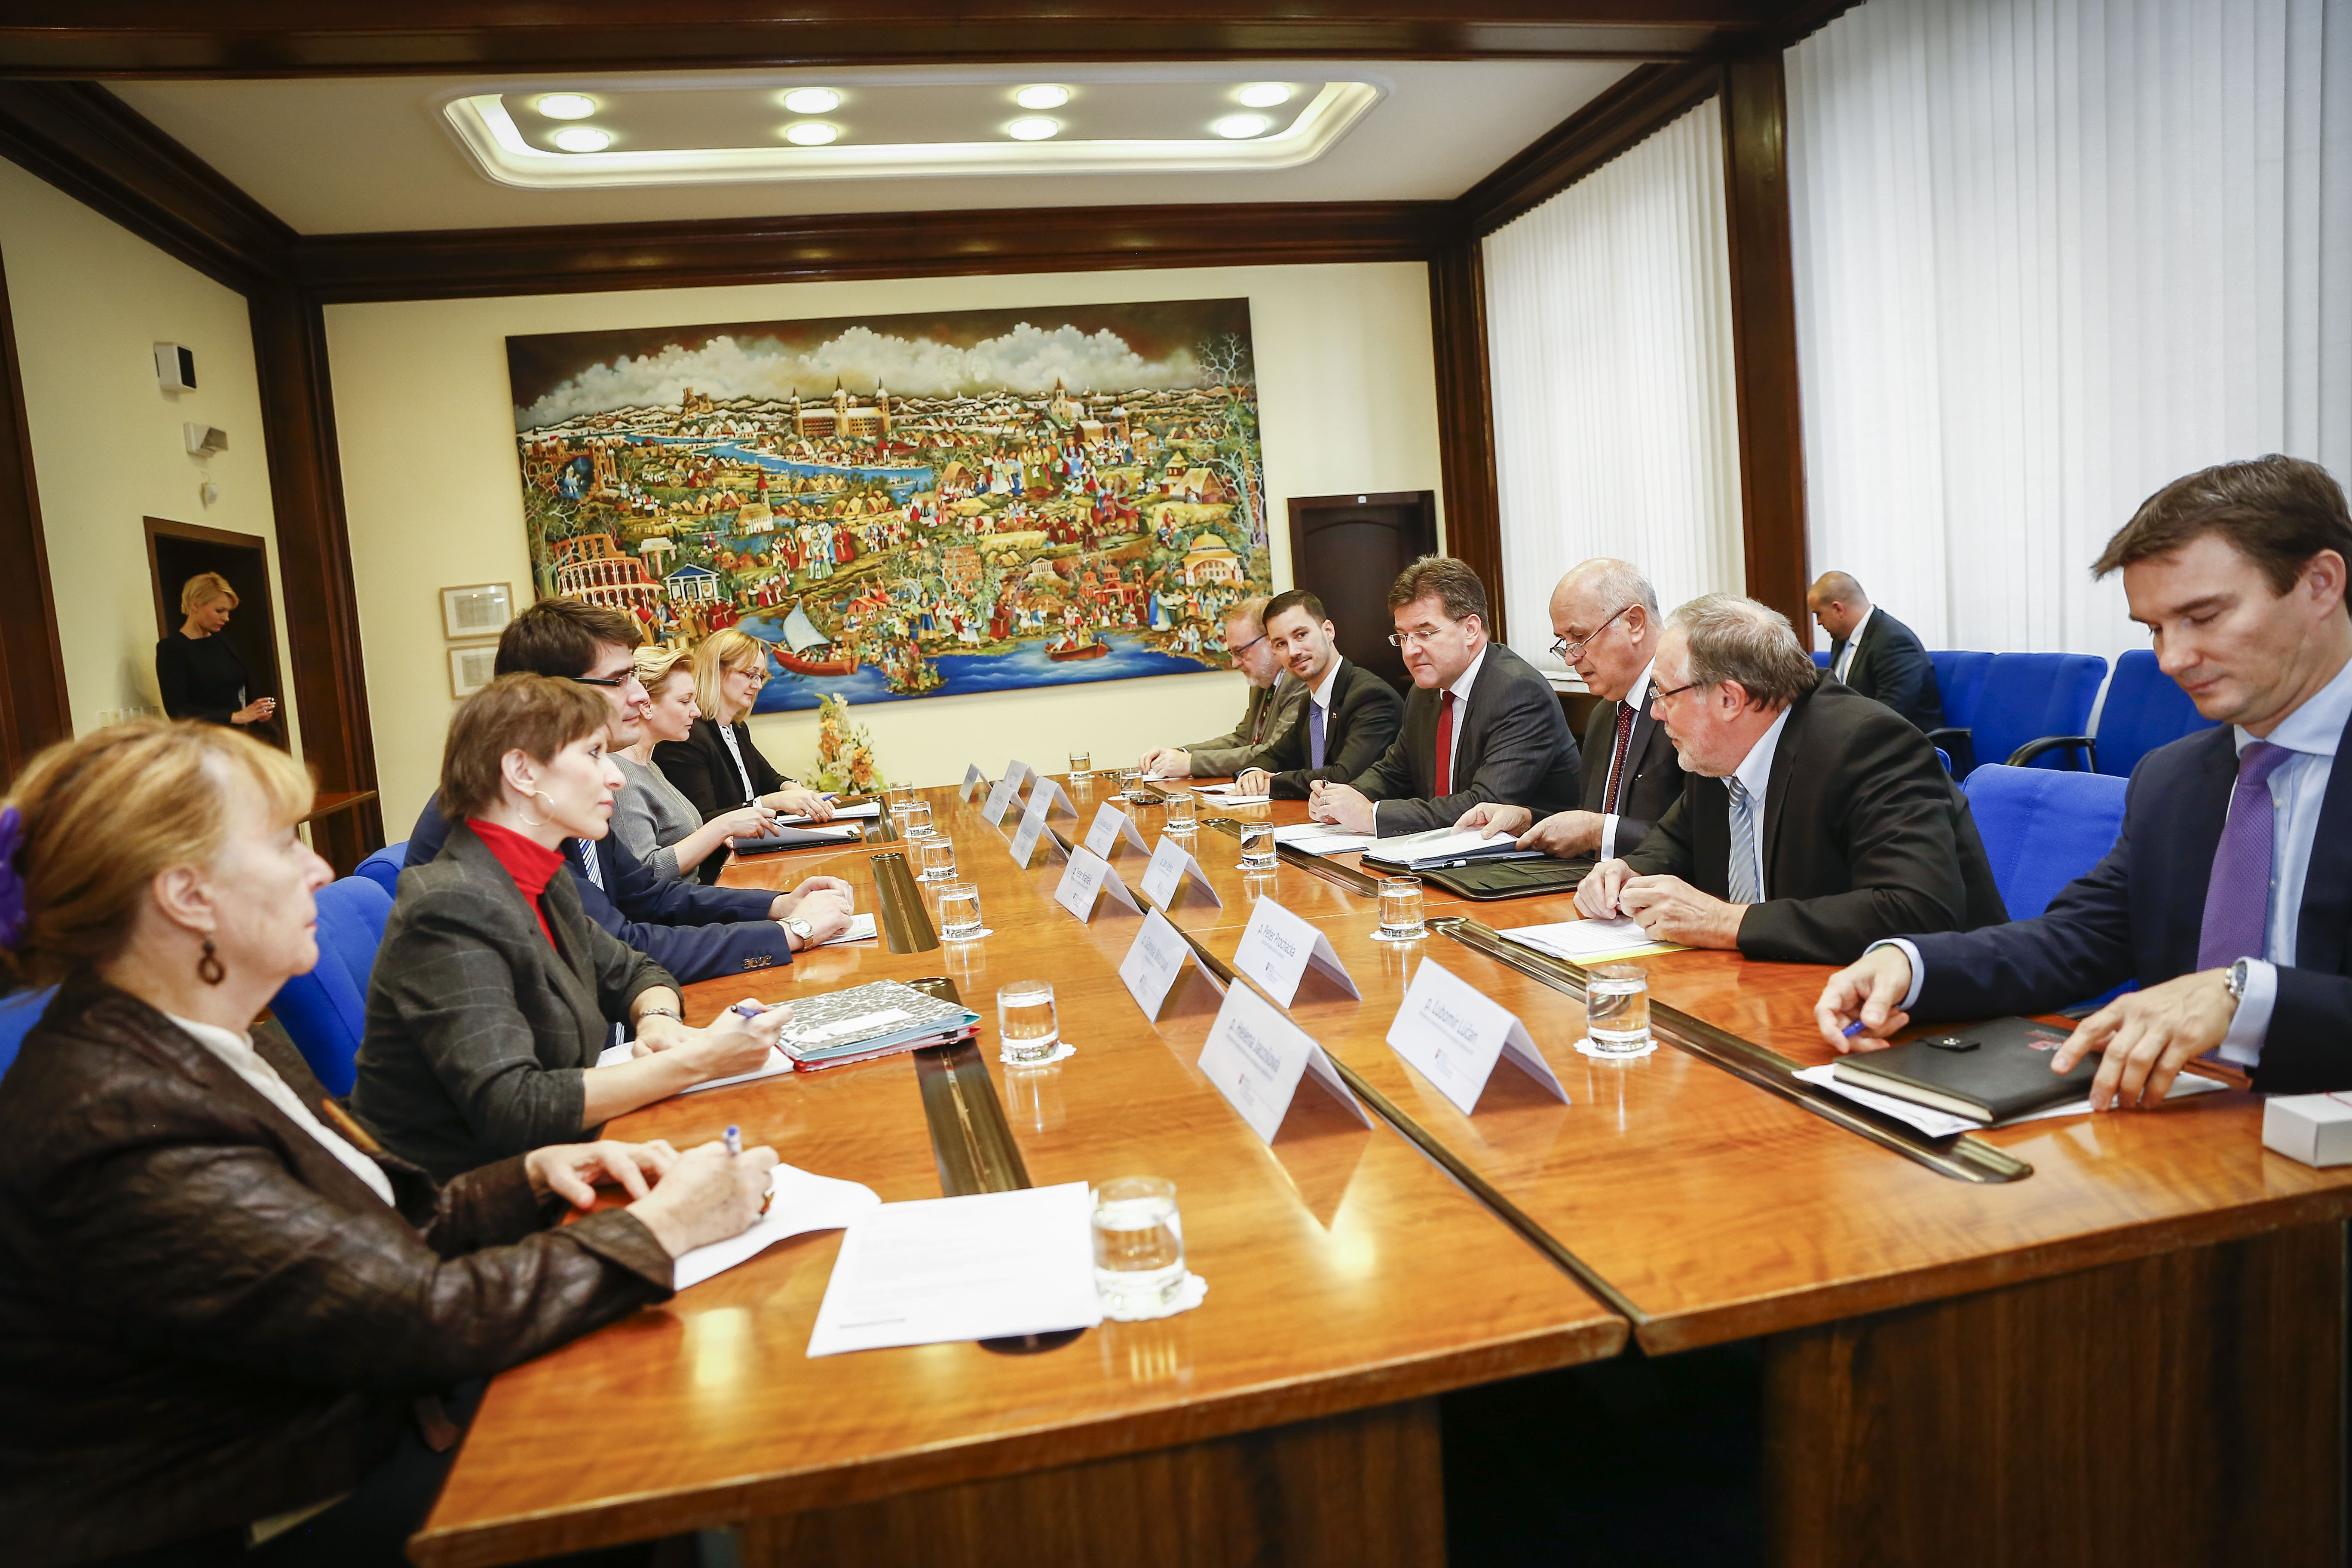 Minister Lajčák opened the first session of the Slovak Government Council for Compatriots´ Issues